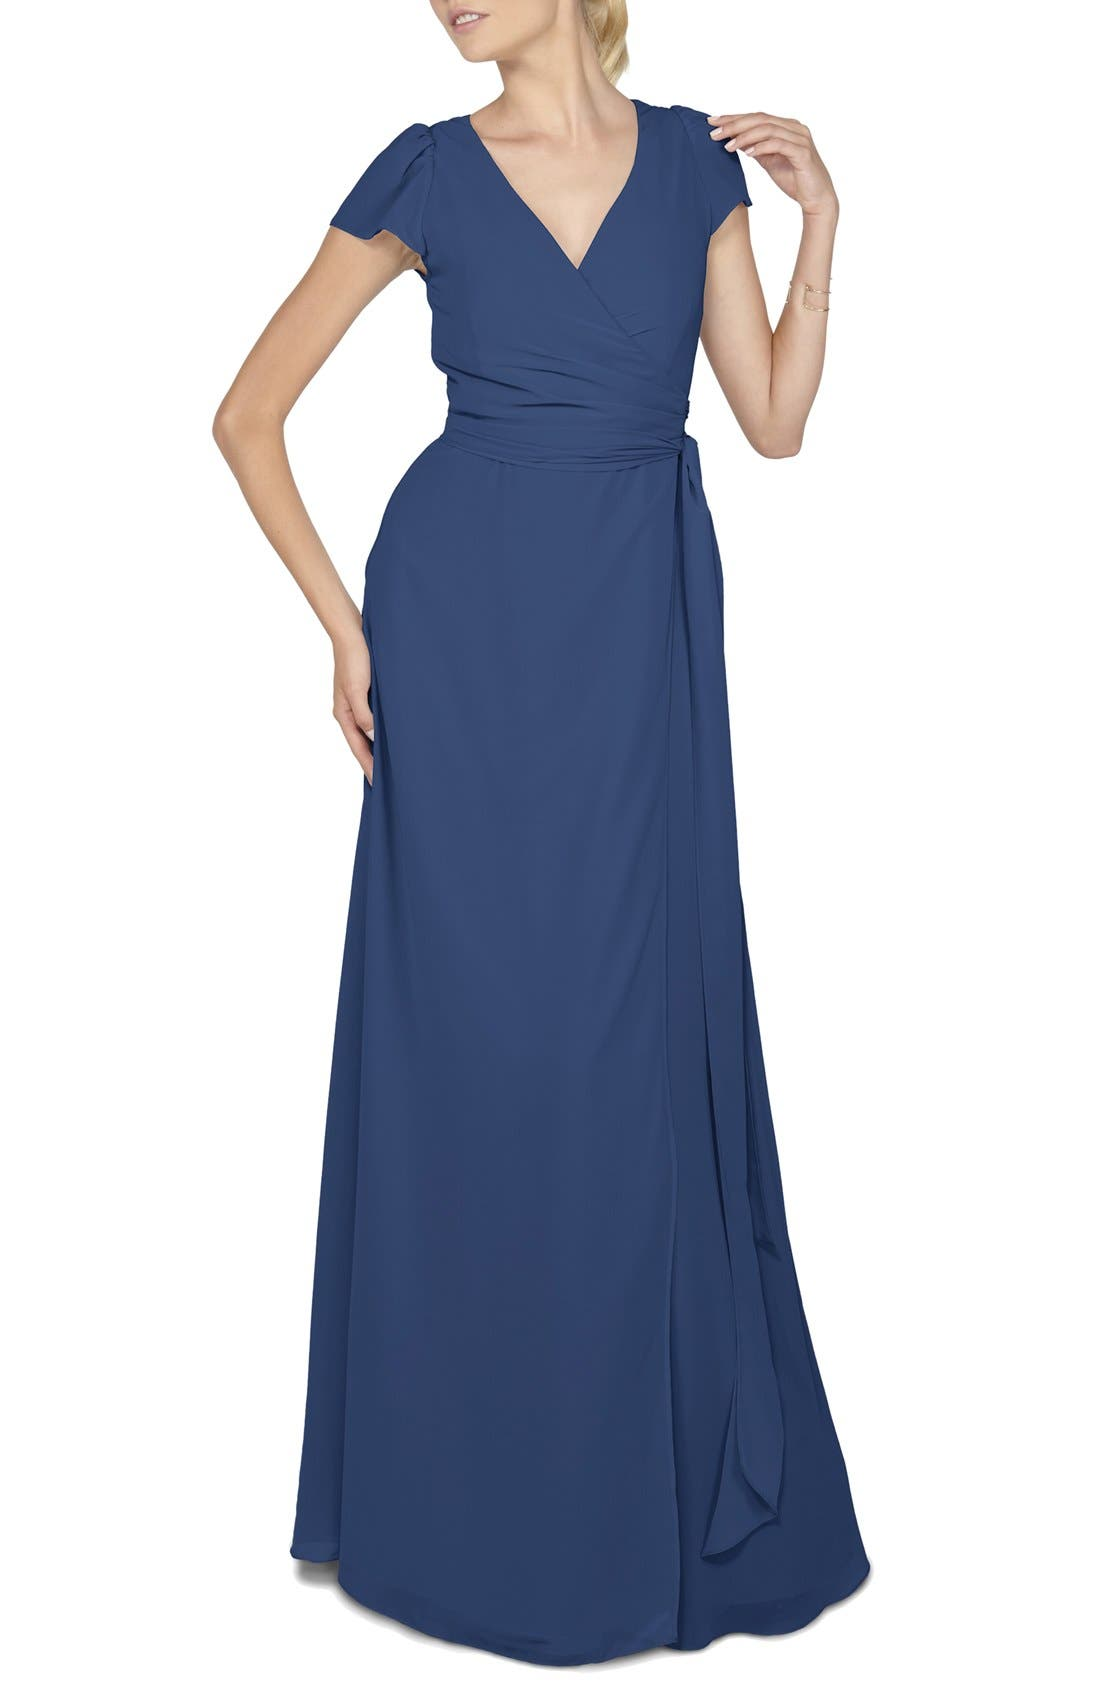 Main Image - Ceremony by Joanna August 'Aurele' Cap Sleeve Chiffon Wrap Gown